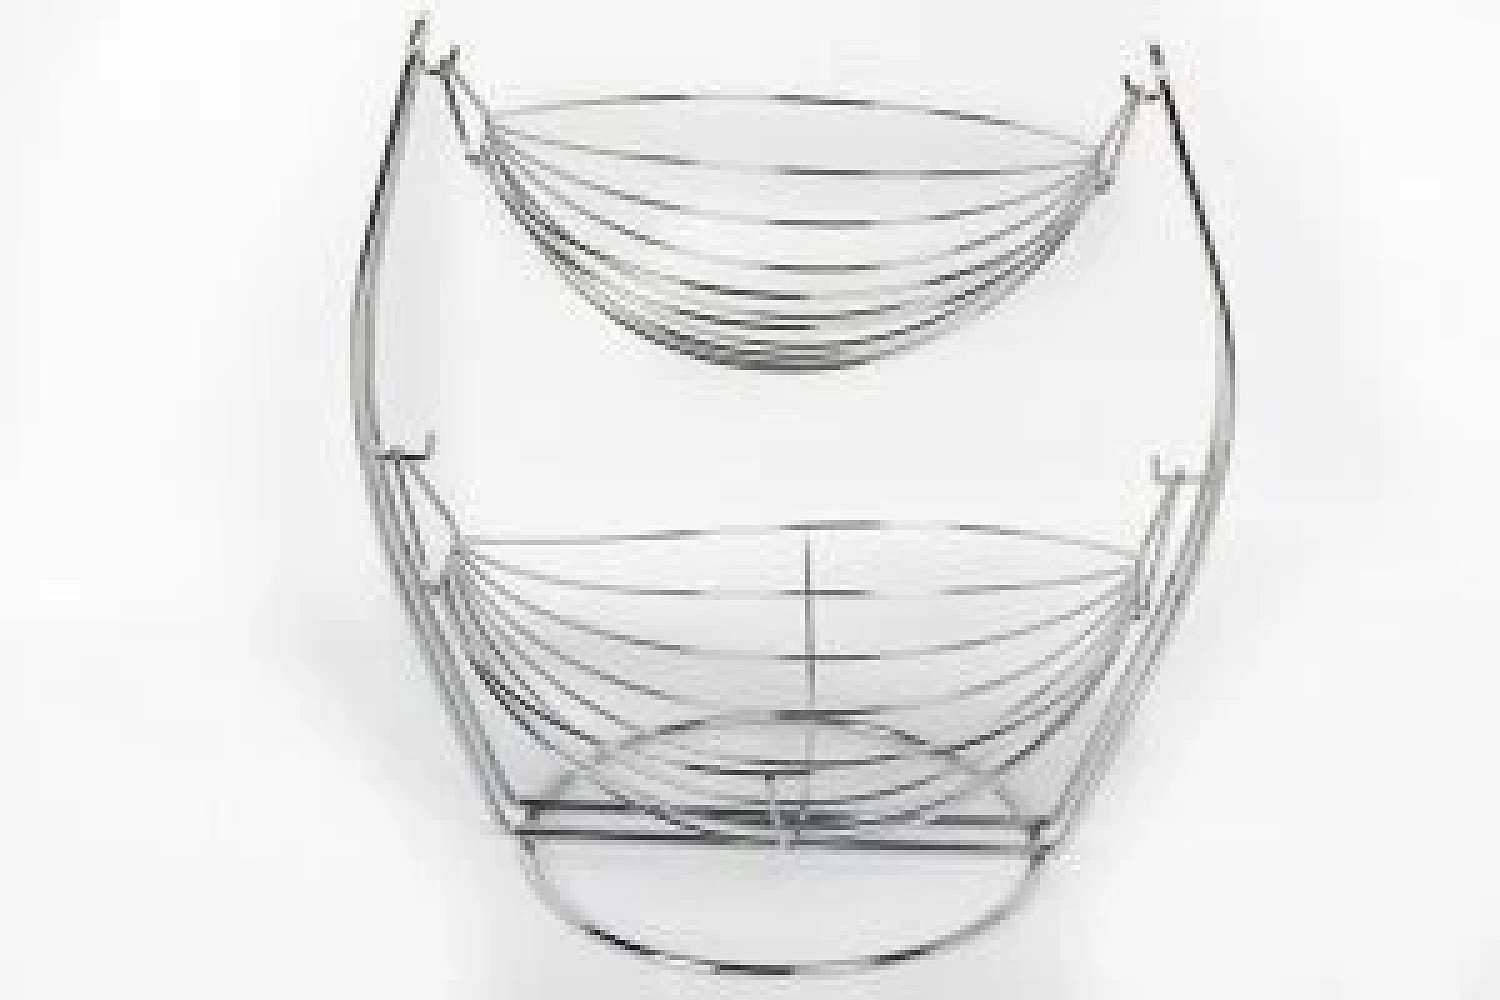 36CM 2 TIER WIRE HANGING BOWL FRUIT VEGETABLE BASKET £23.99 Free Postage